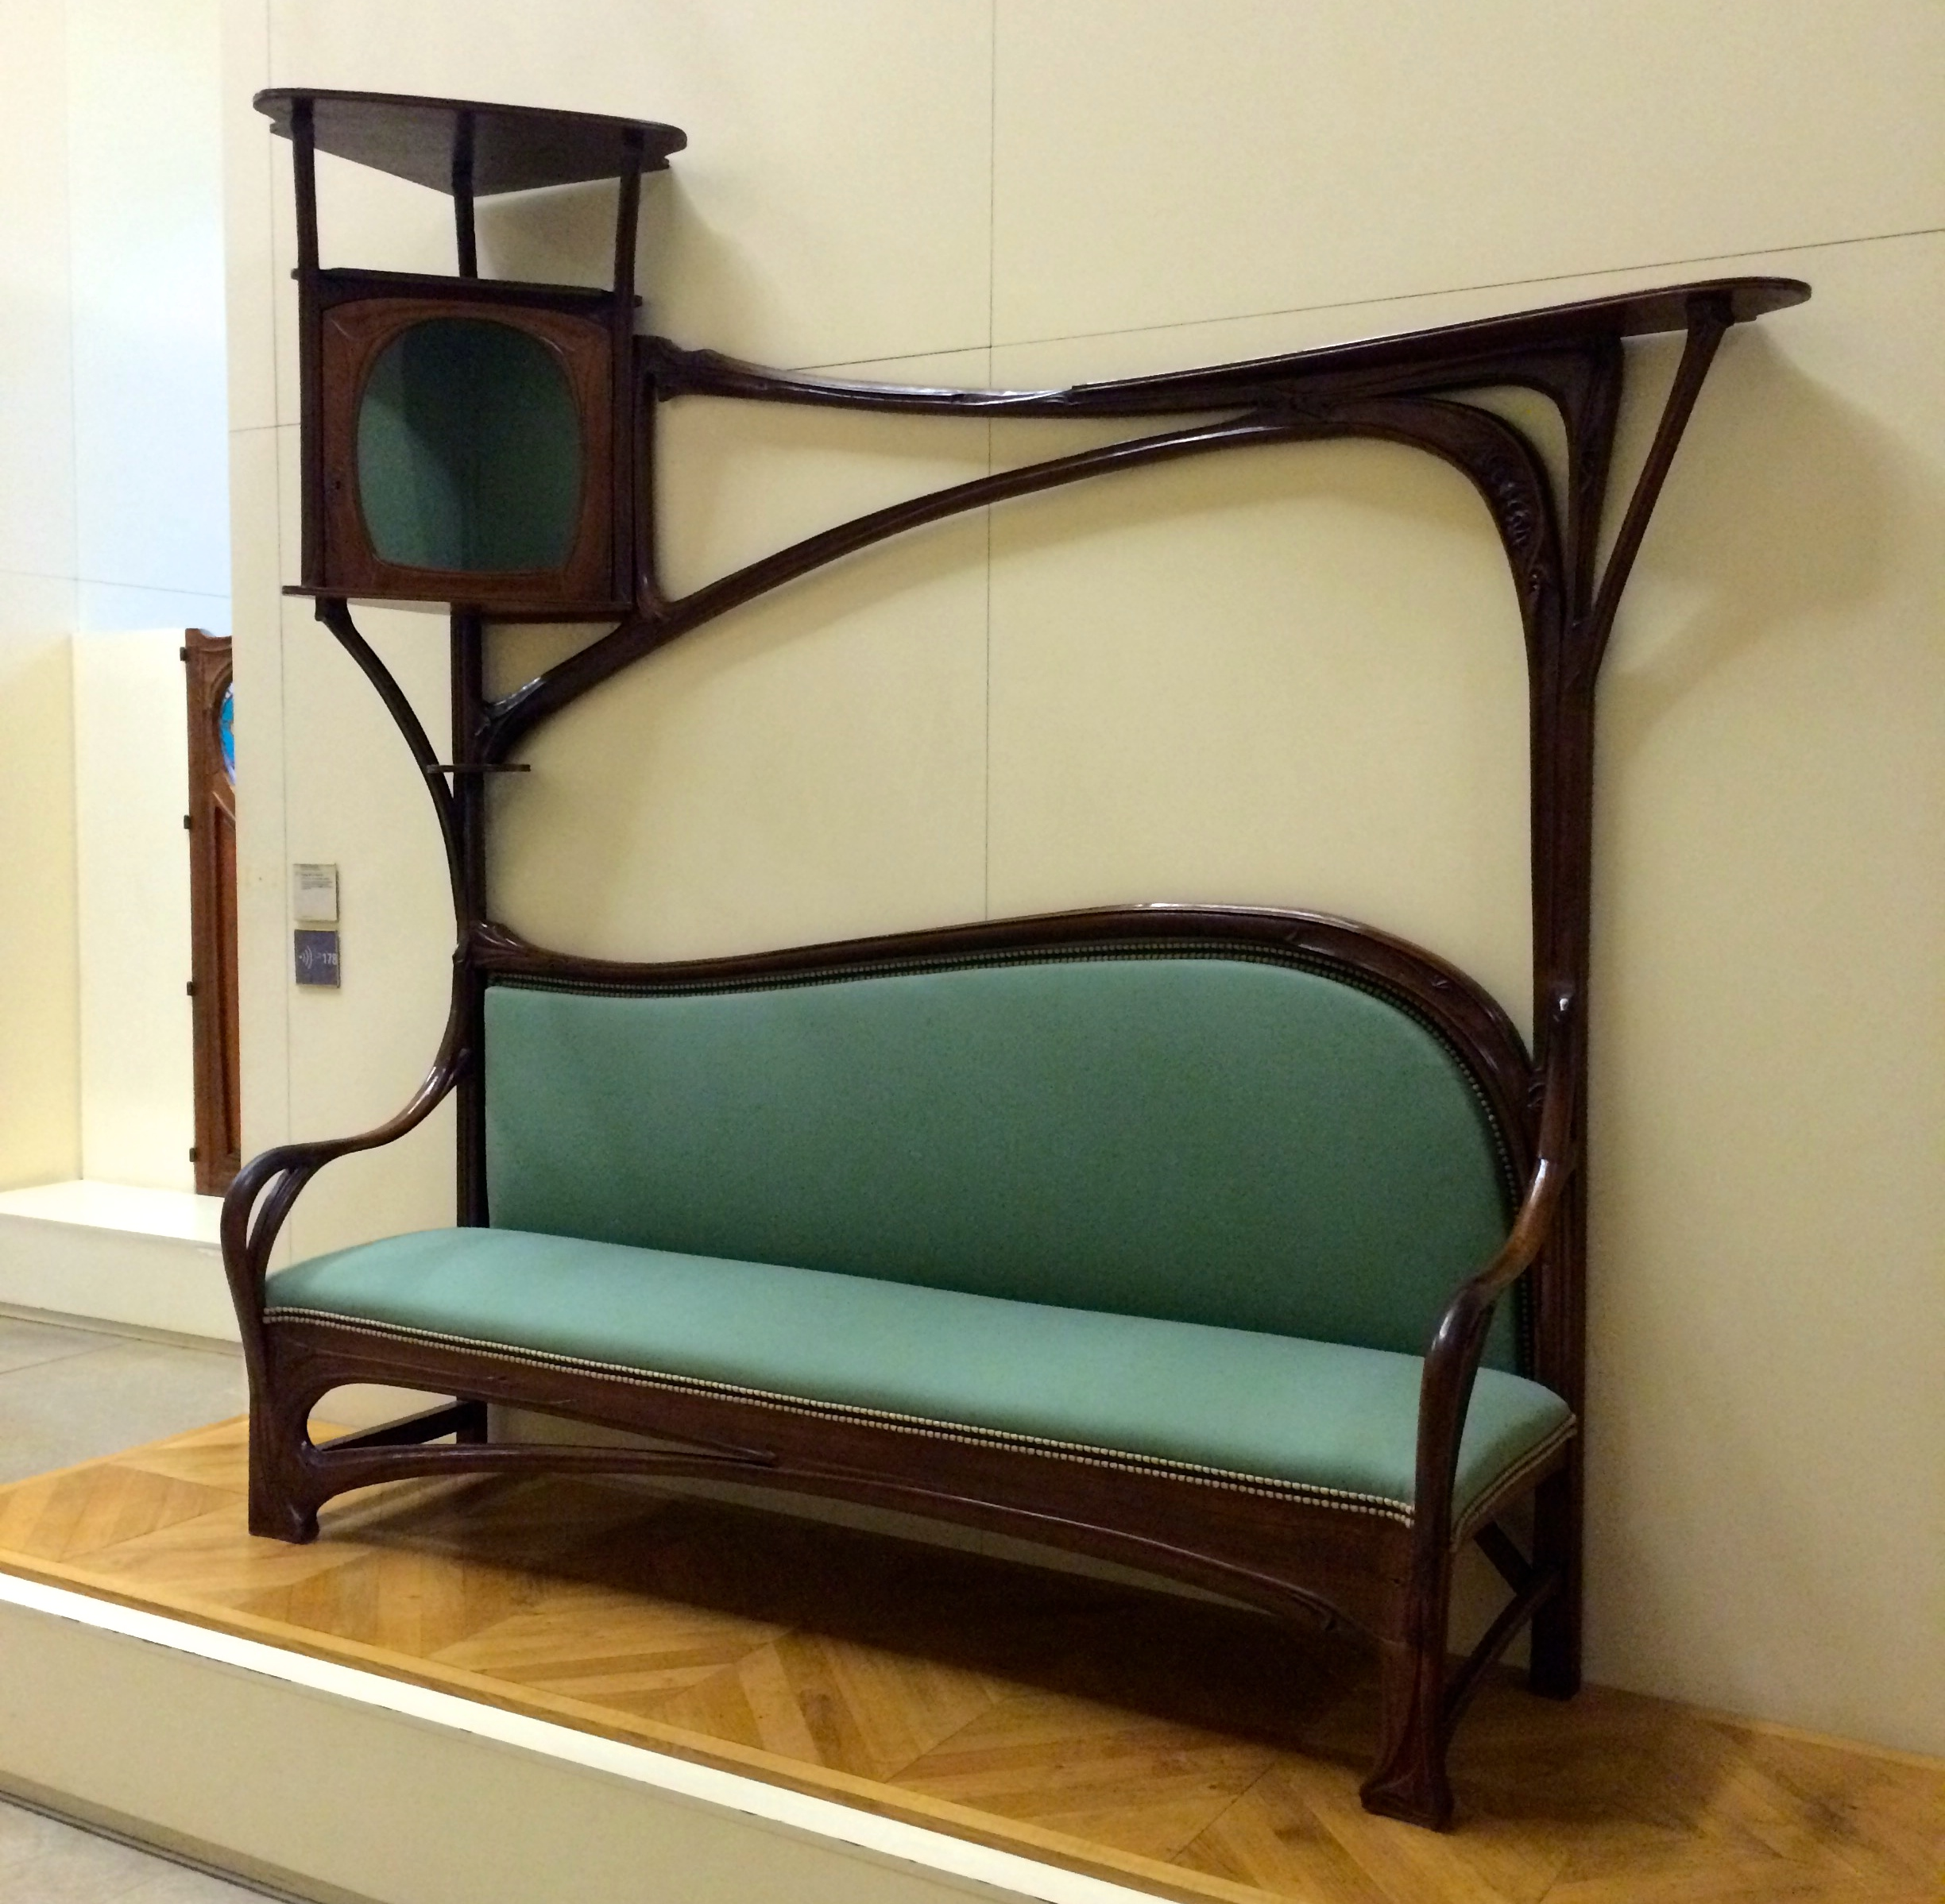 The museum's Art Nouveau furniture collection is always inspirational.